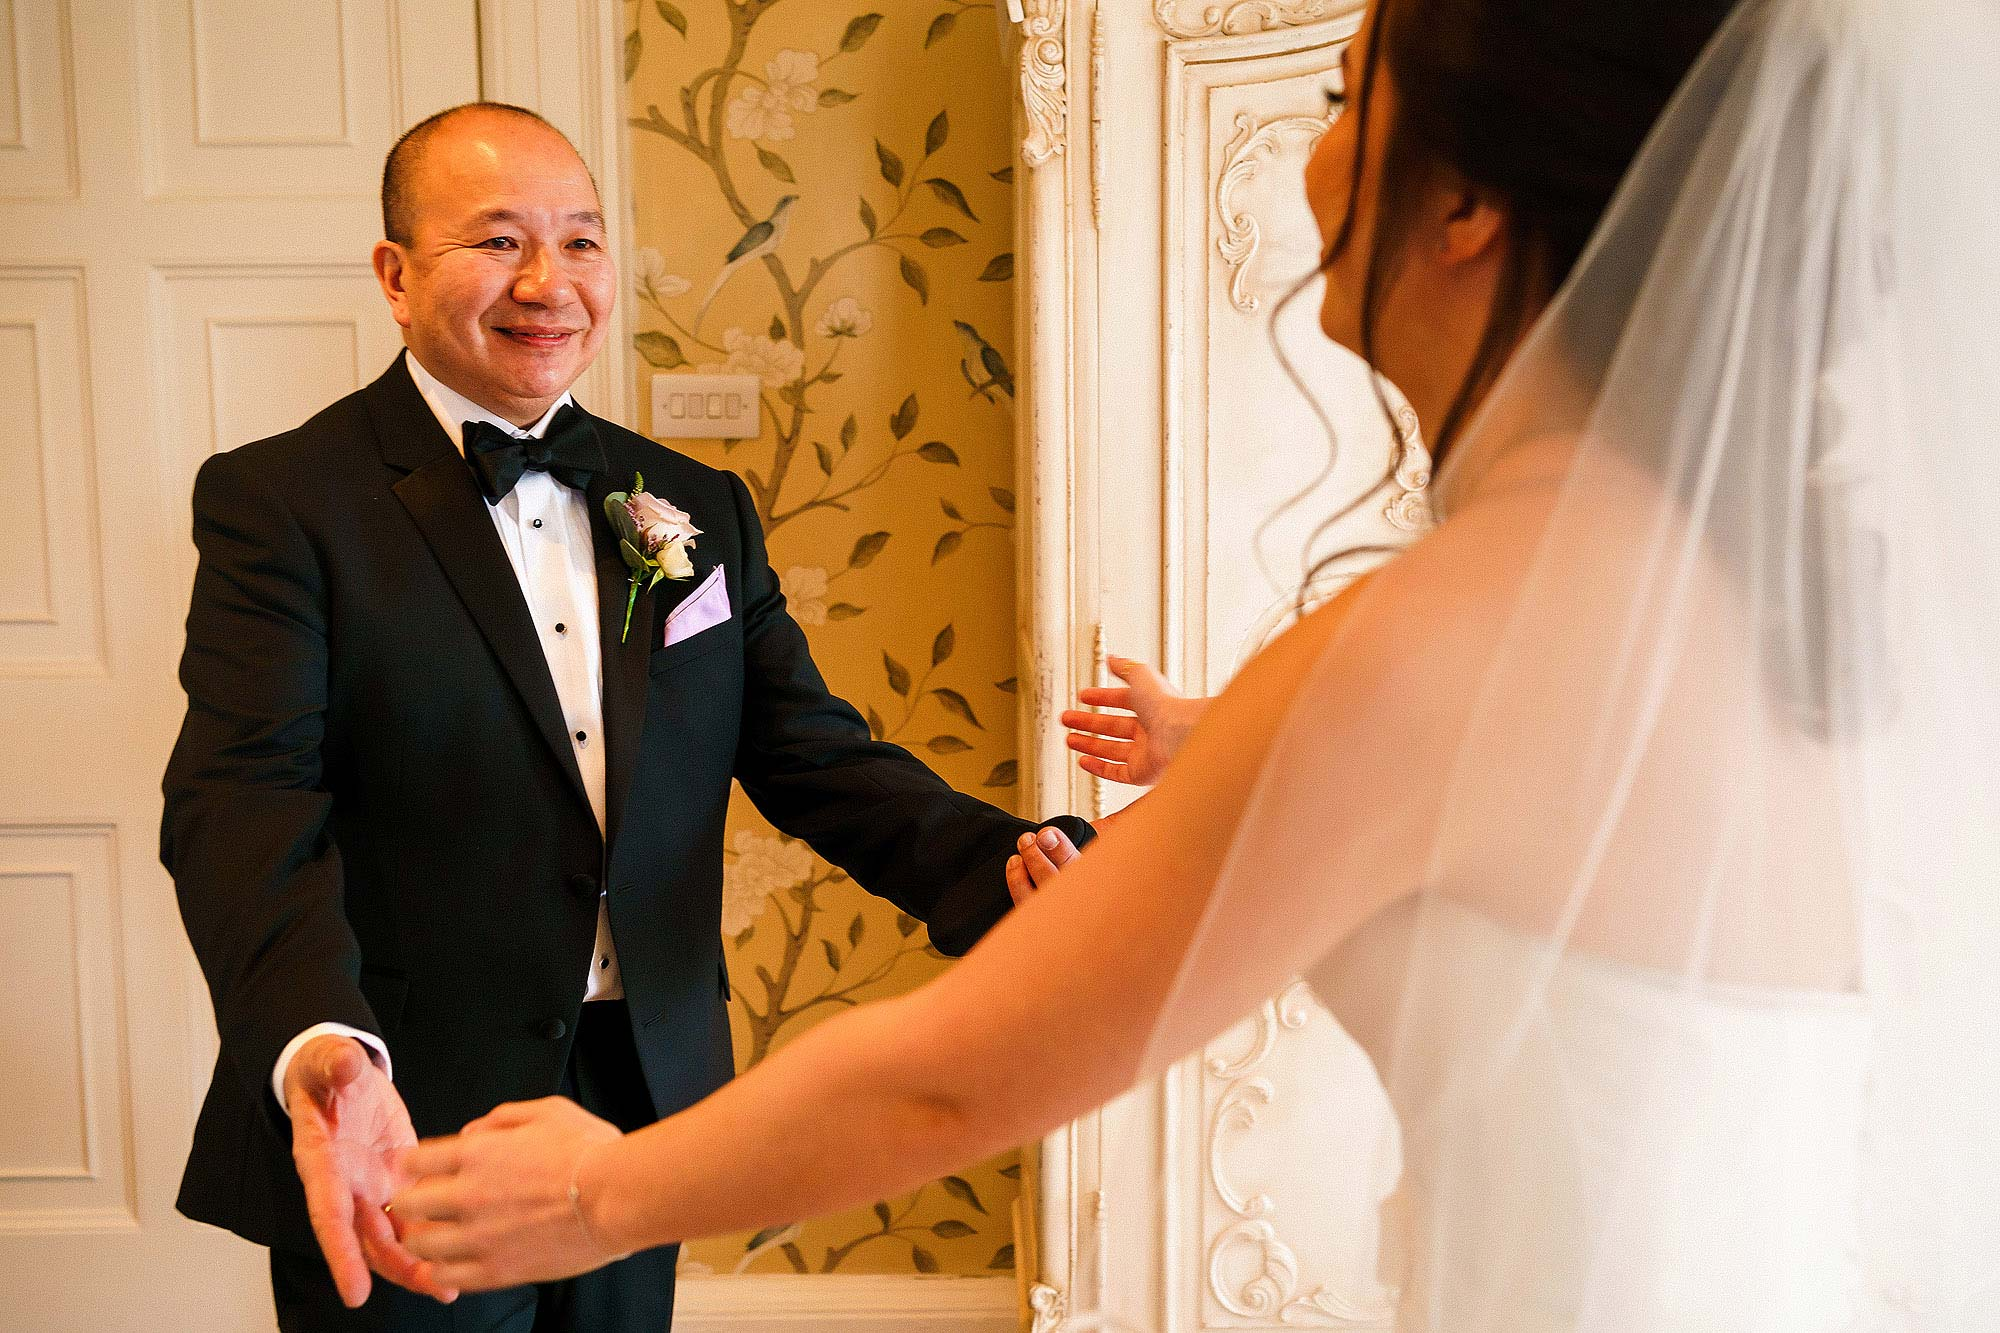 bride's father seeing daughter in dress for first time